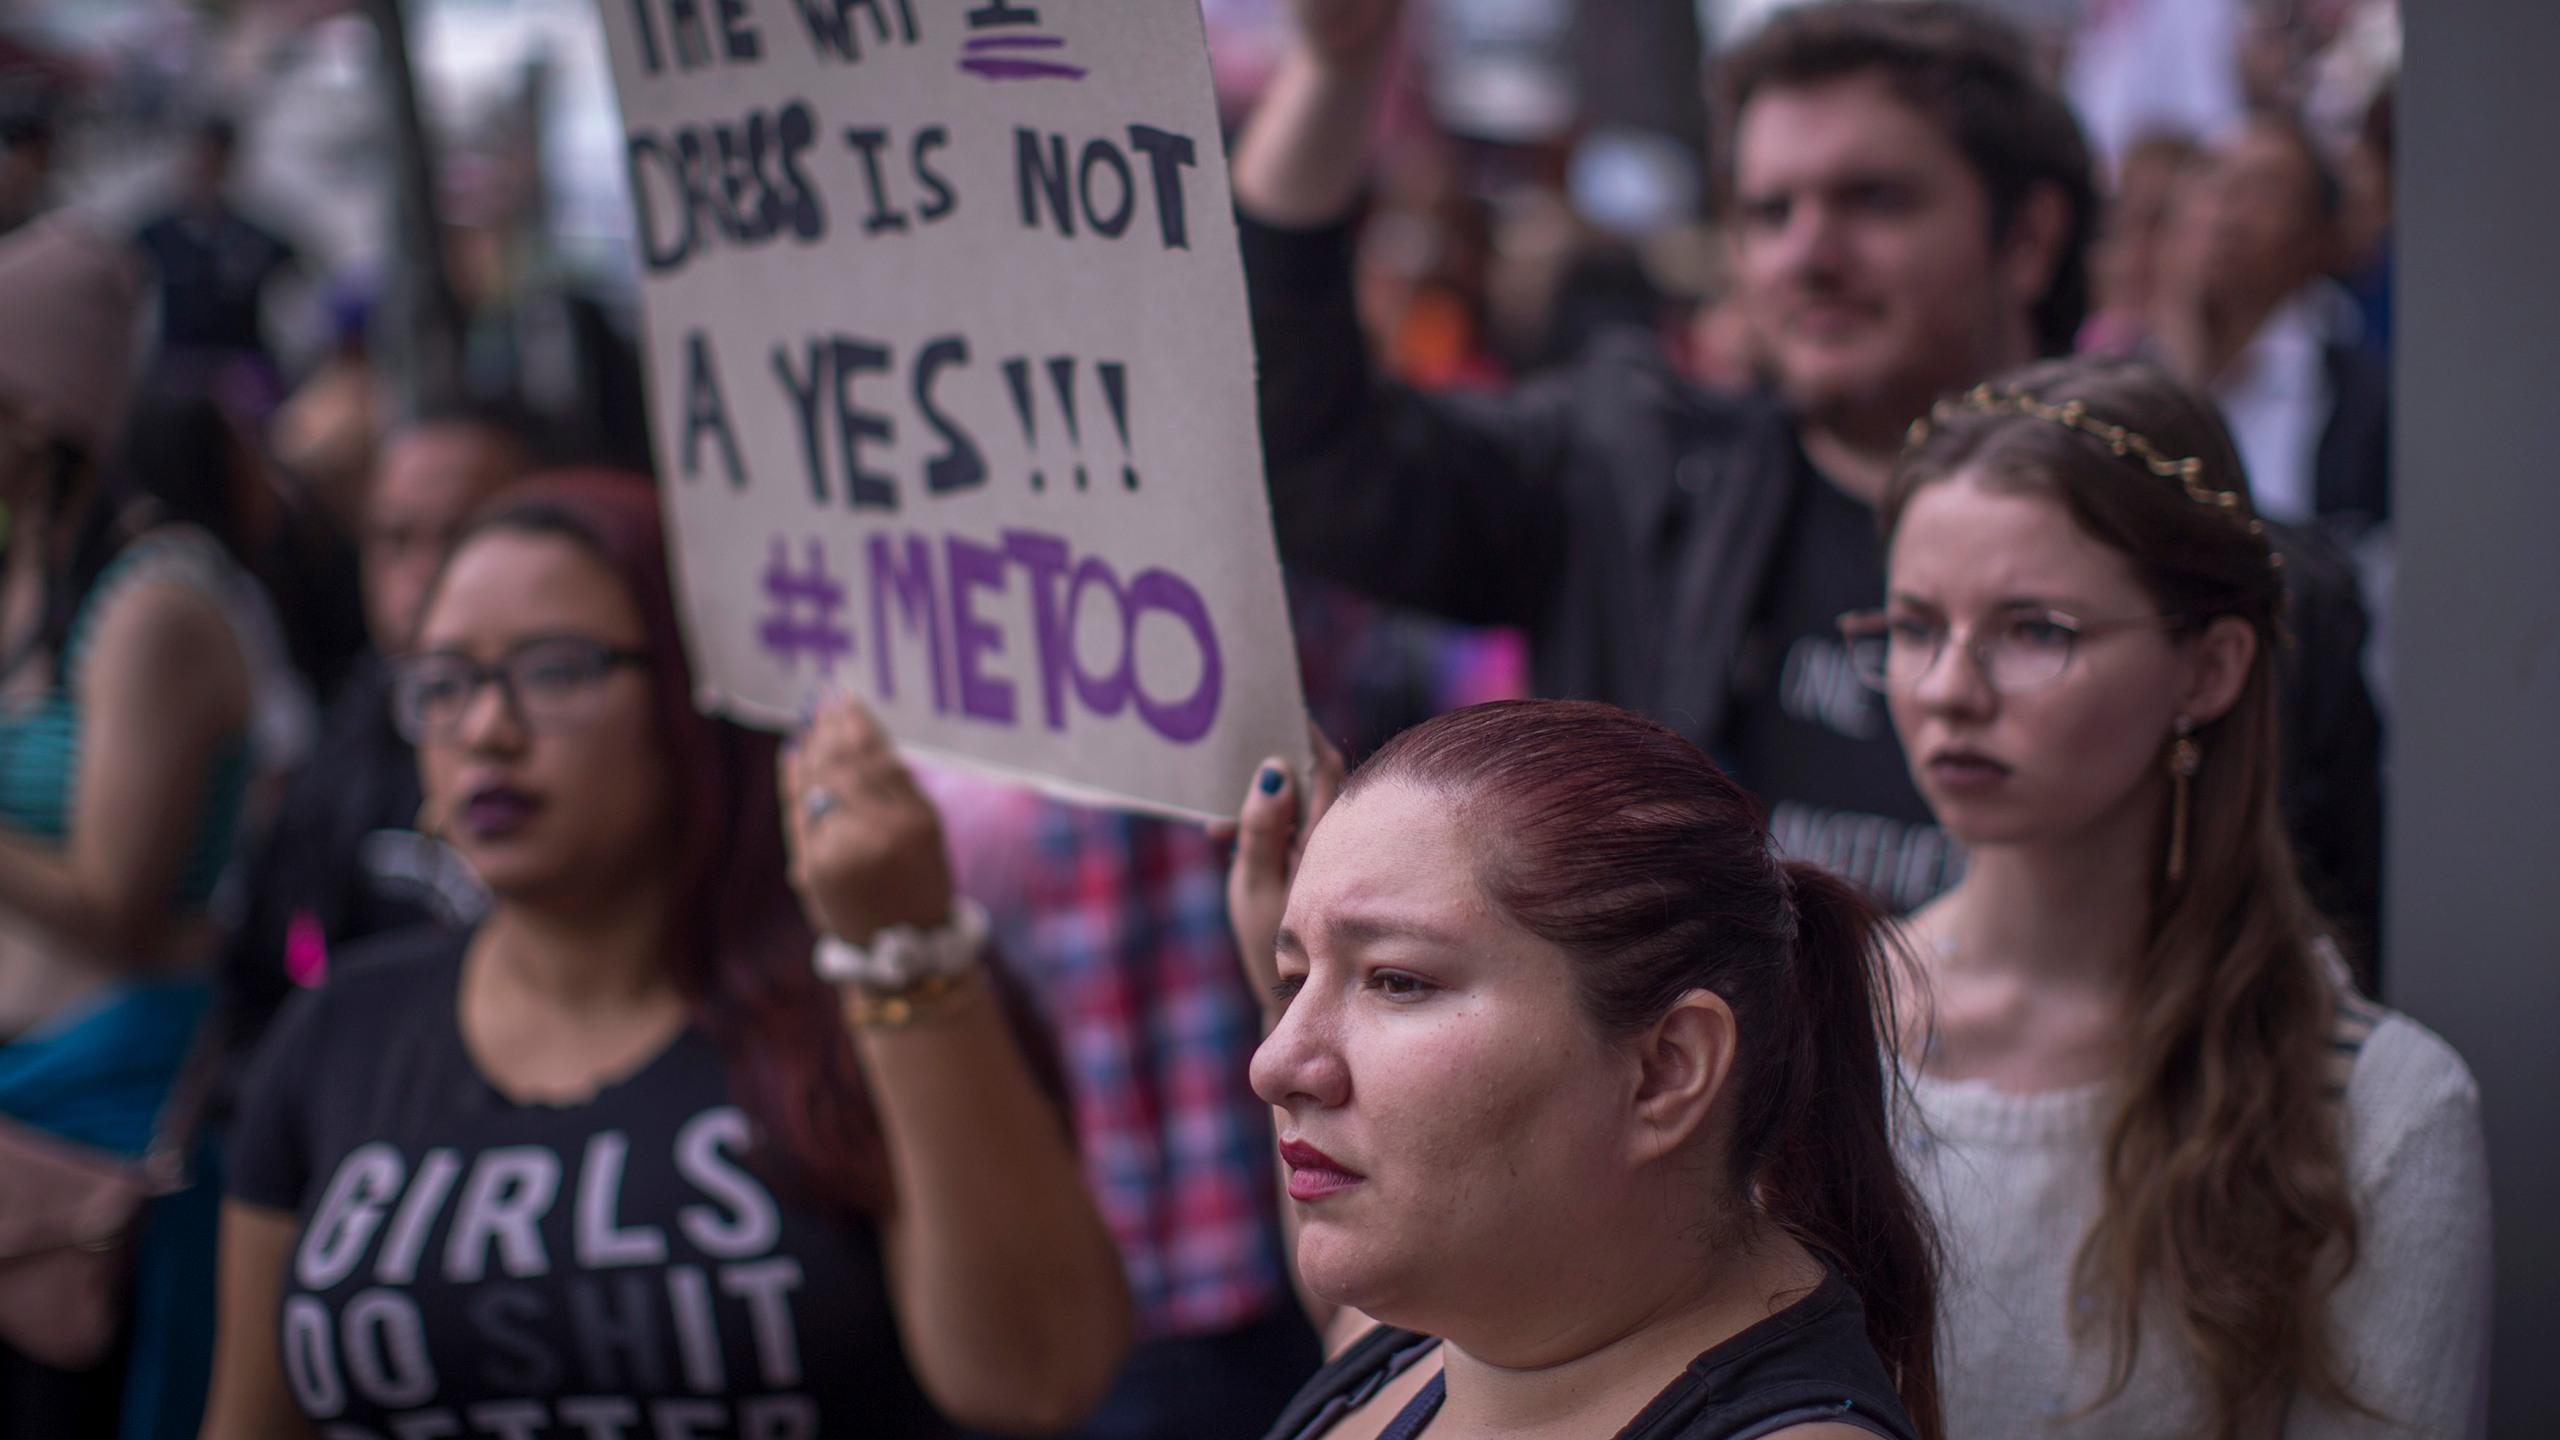 Demonstrators participate in the #MeToo Survivors' March outside the CNN building in response to several high-profile sexual harassment scandals on Nov. 12, 2017, in Los Angeles. (Credit: David McNew/Getty Images)